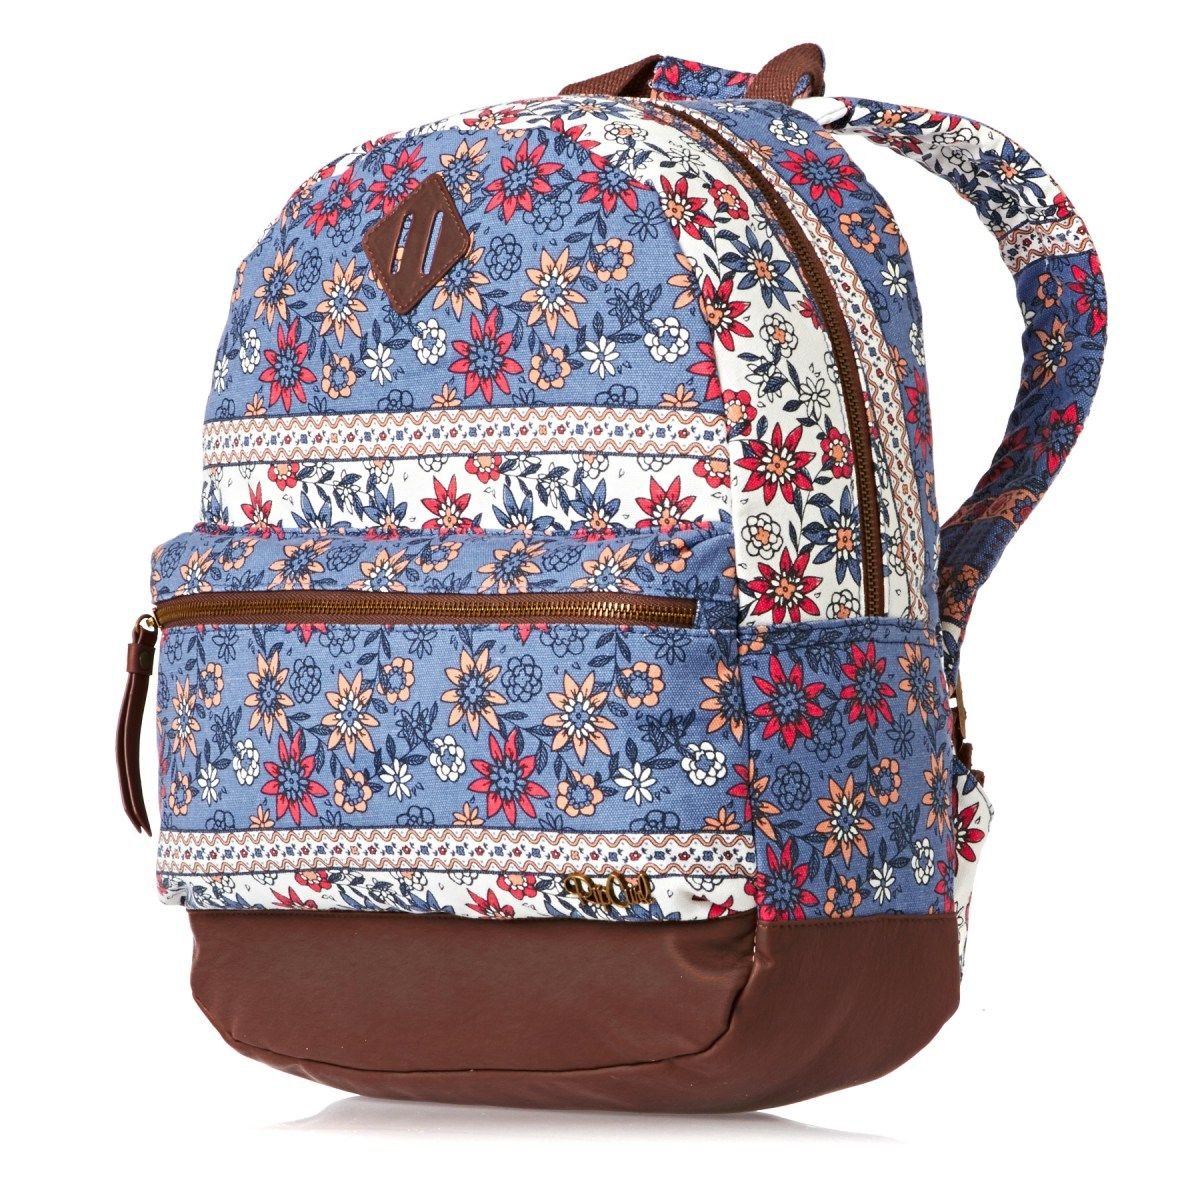 3b4b2d870404 Women s Rip Curl Backpacks - Rip Curl Flower Power Dome Backpack - Allure